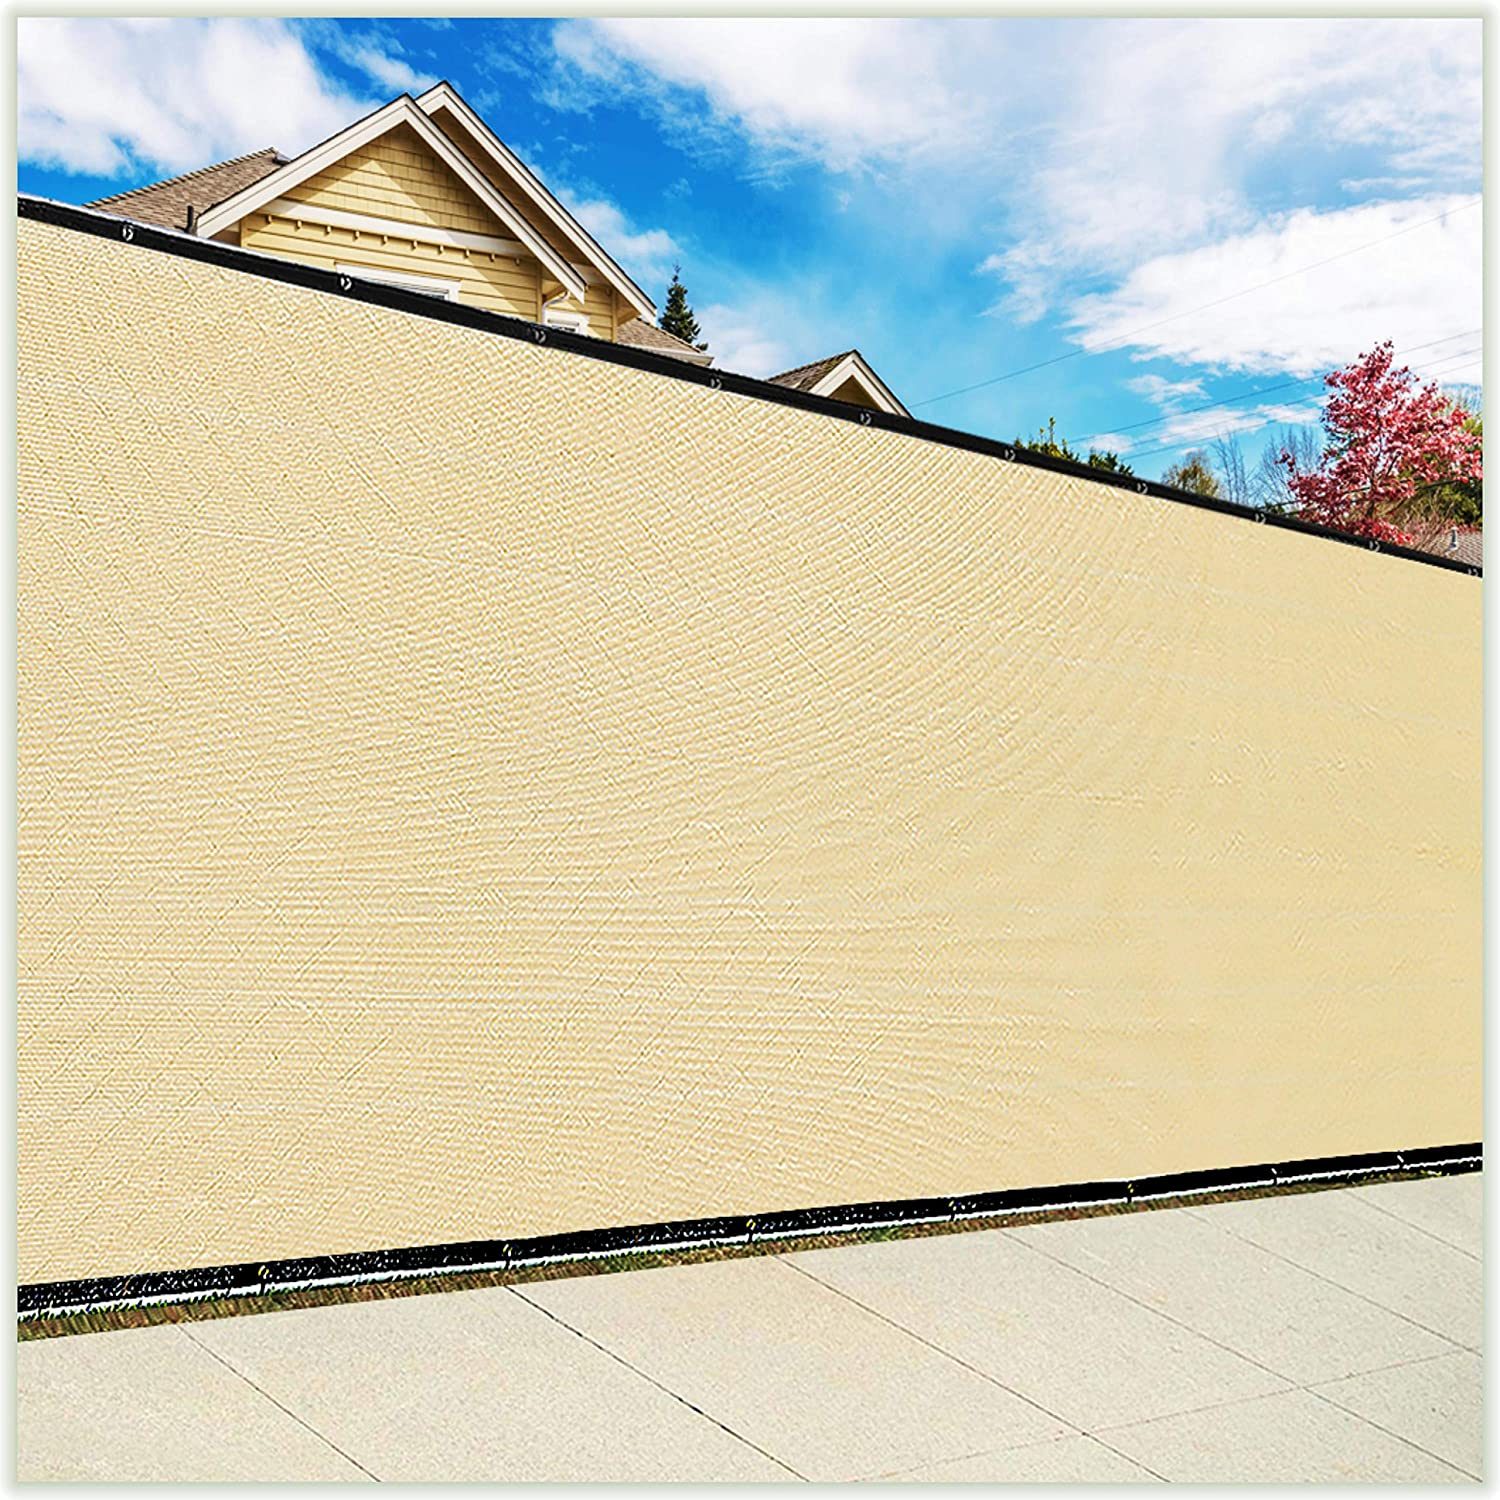 ColourTree 6' x 50' Beige Fence Privacy Screen Windscreen Cover Fabric Shade Tarp Netting Mesh Cloth - Commercial Grade 170 GSM - Cable Zip Ties Included - We Make Custom Size